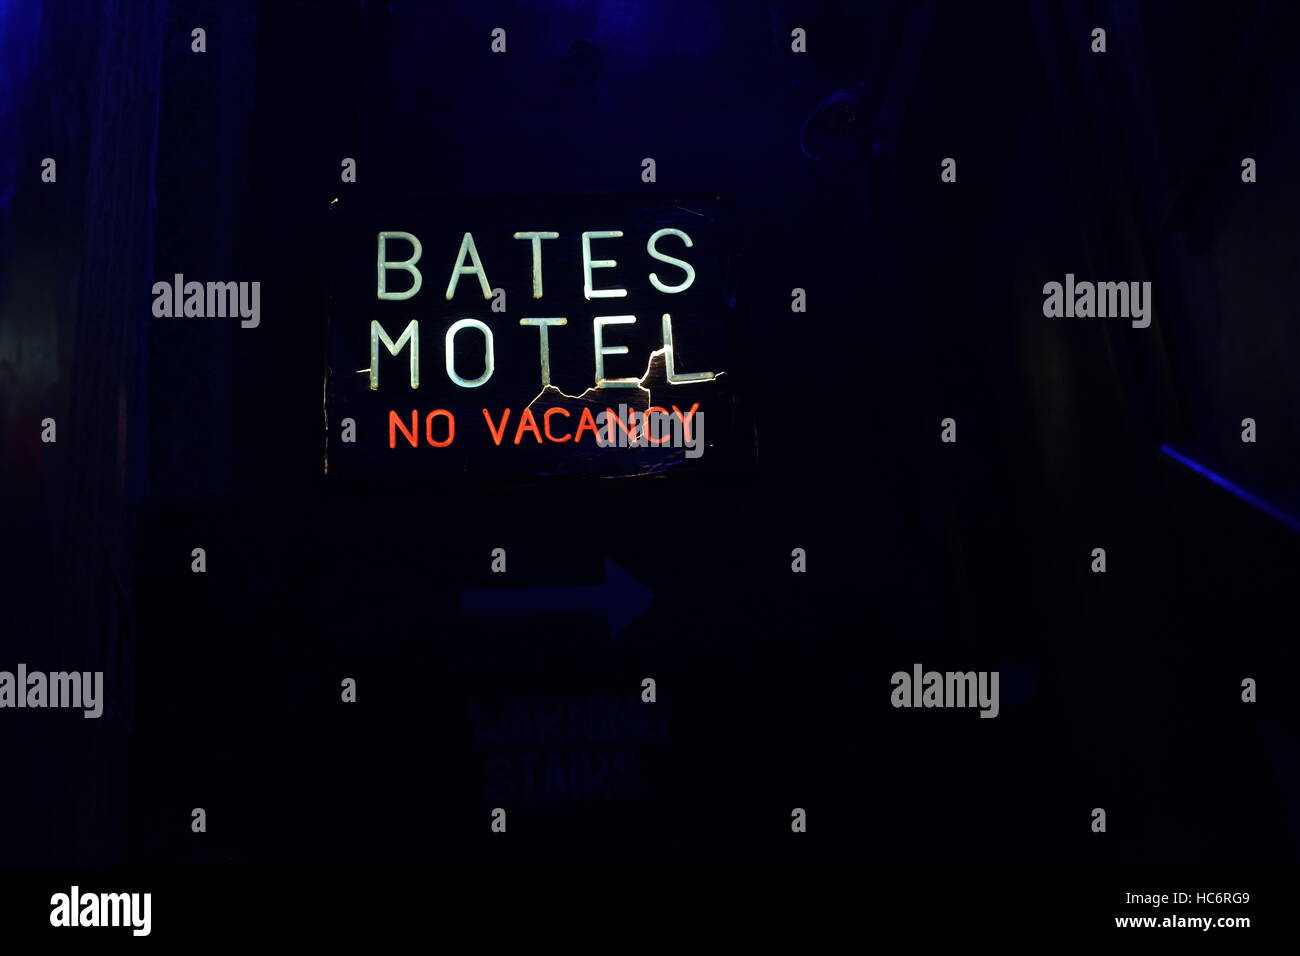 The Bates Motel from the film 'Psycho' at the Terror Tower